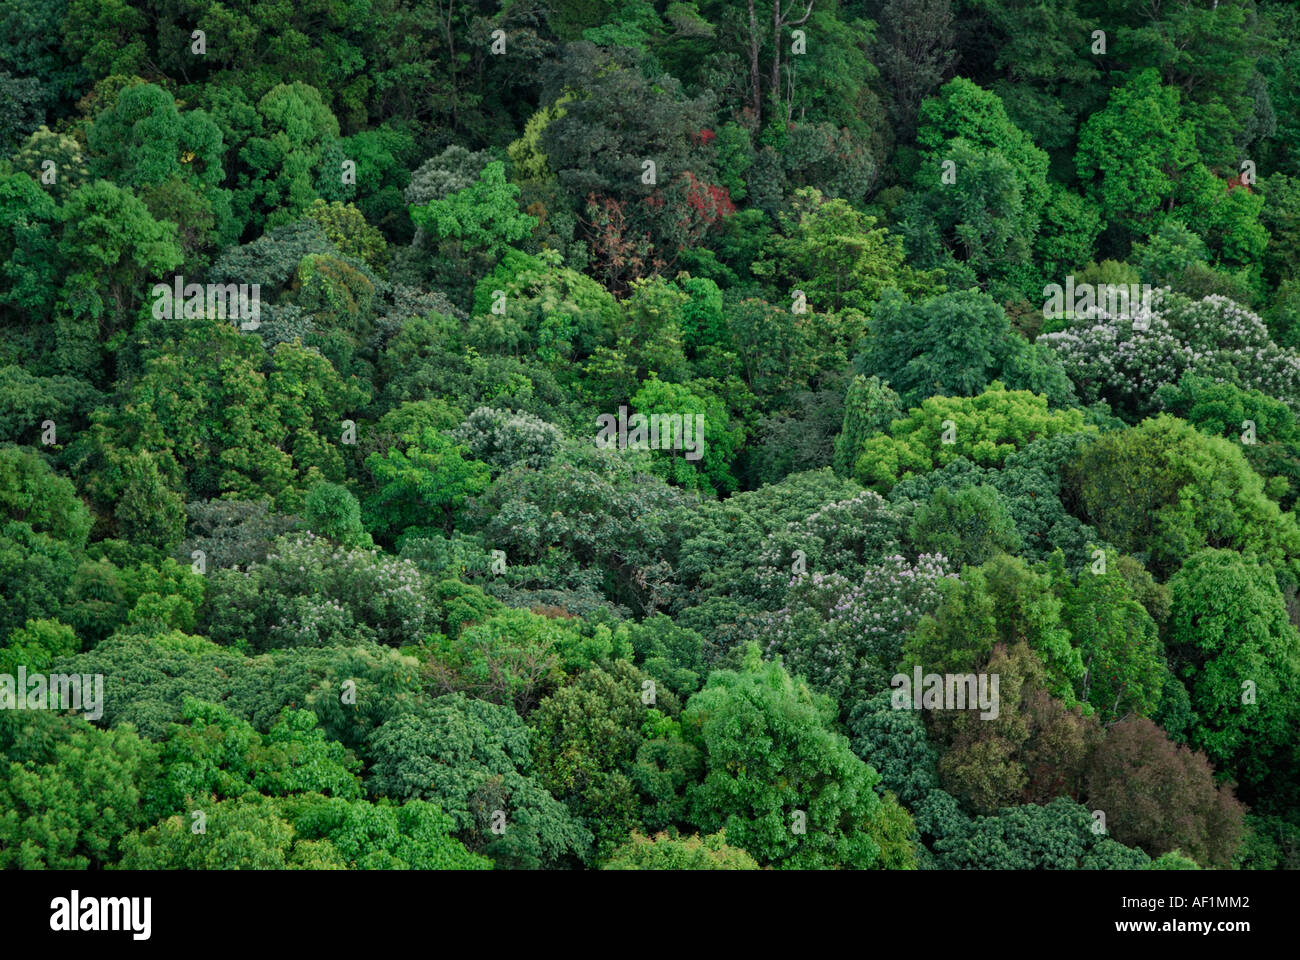 EVERGREEN FOREST CANOPY SILENT VALLEY NATIONAL PARK & EVERGREEN FOREST CANOPY SILENT VALLEY NATIONAL PARK Stock Photo ...